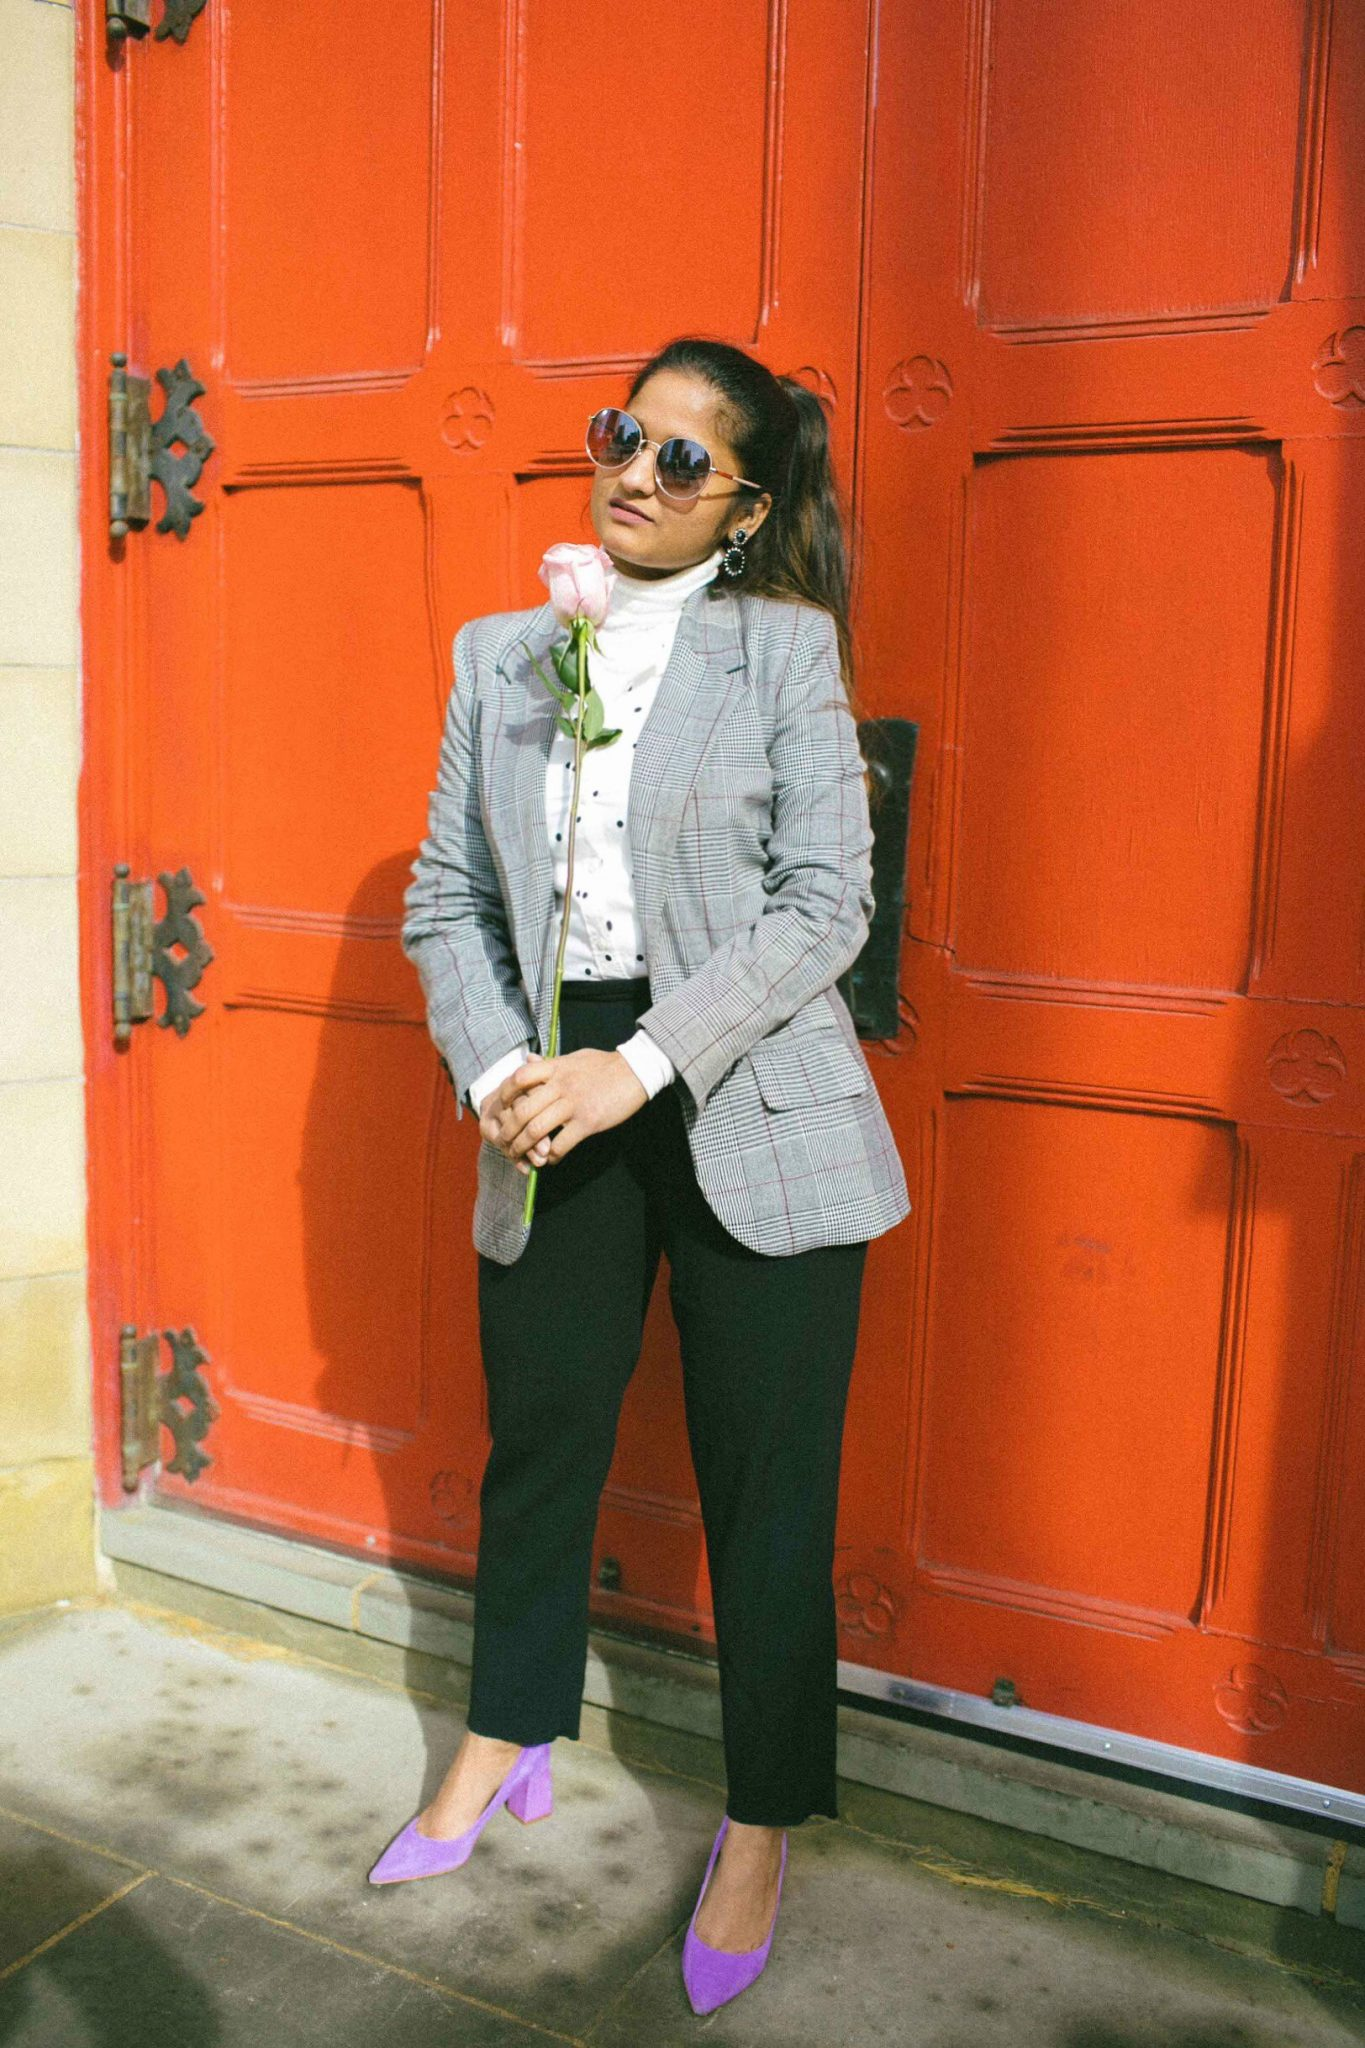 Lifestyle Blog Dreaming loud wearing Polka dot shirt with Plaid blazer - Spring Outfit Ideas featured by popular Ohio modest fashion blogger, Dreaming Loud